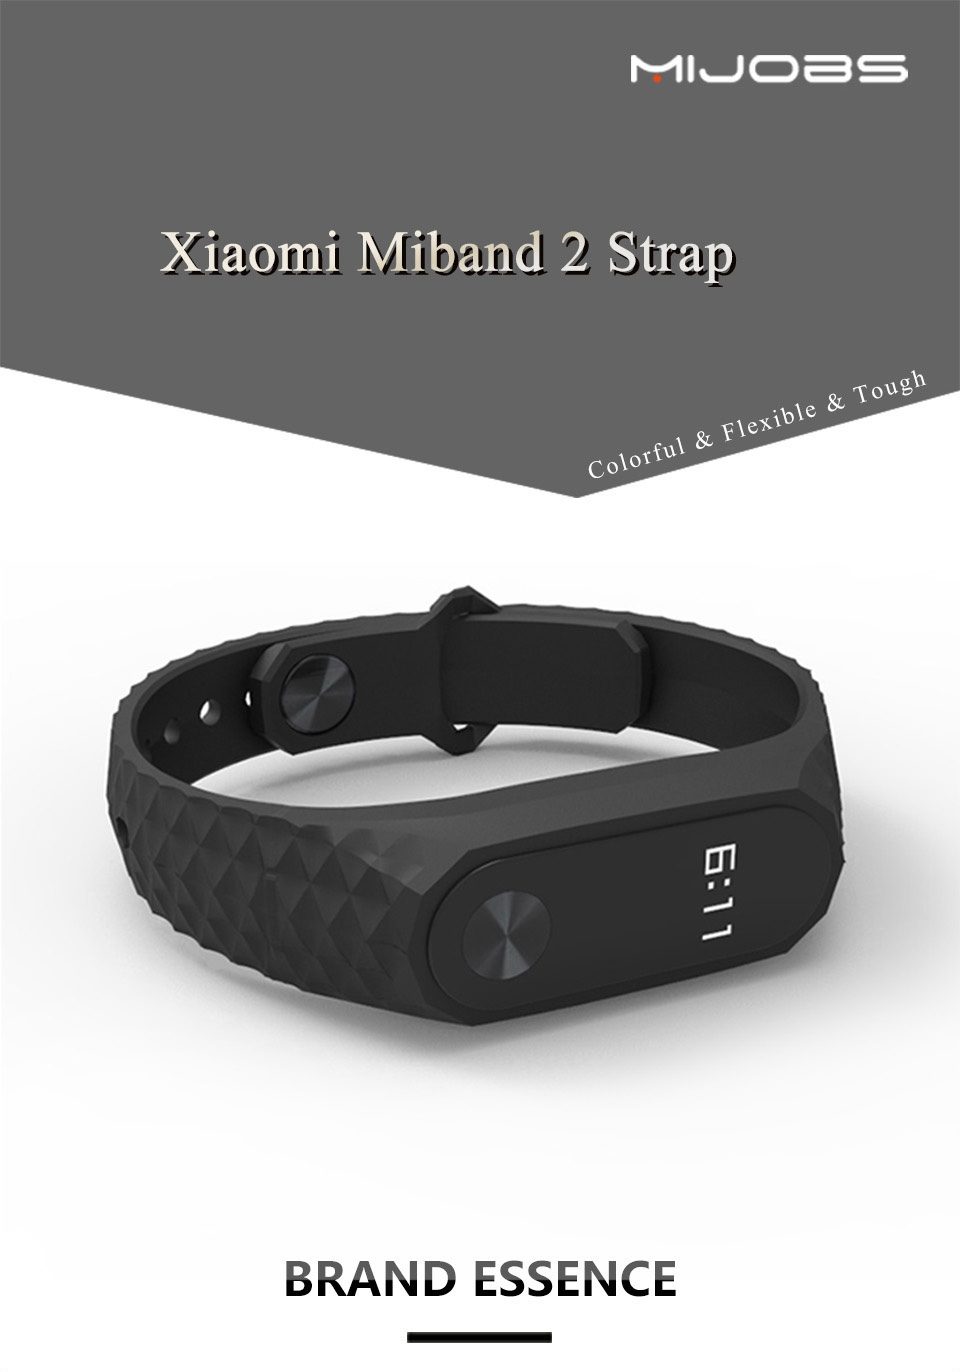 Mijobs Xiaomi Mi Band 2 Strap Silicone Strap Bracelet Replacement Wristband Smart Band Accessories Colorful wrist Strap 2